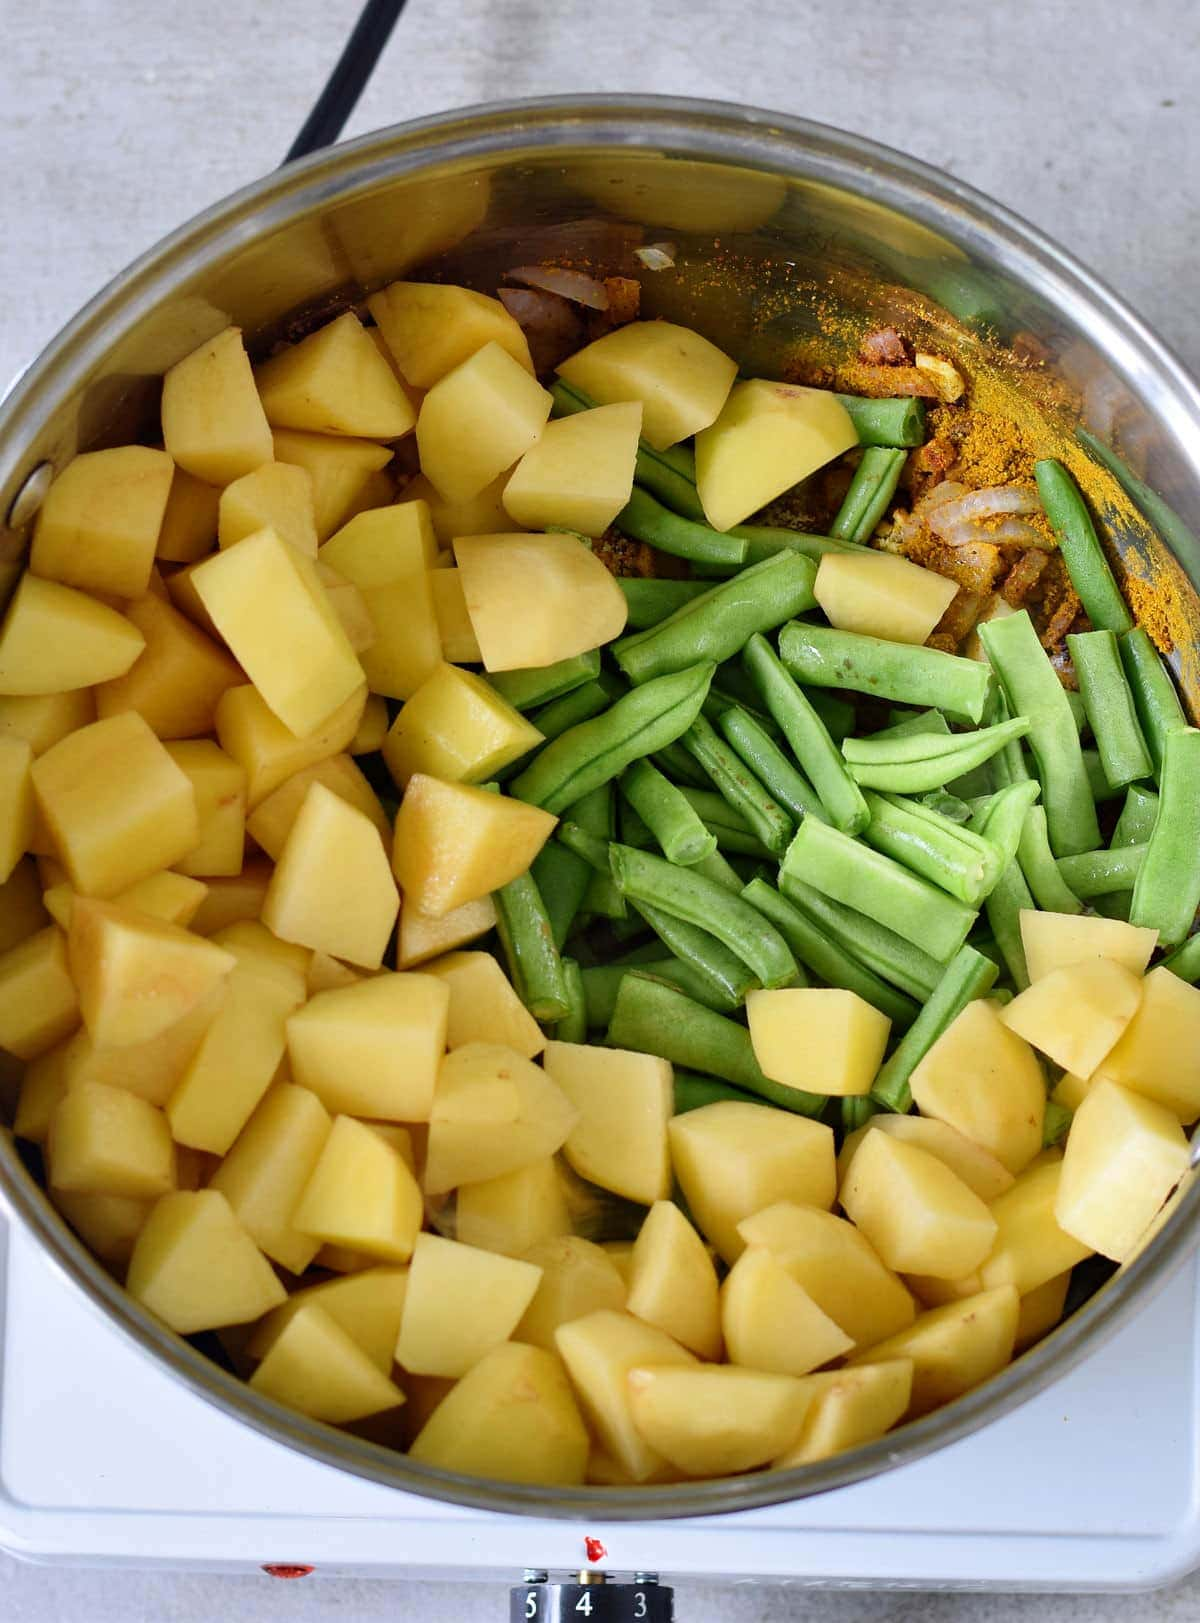 chopped potatoes green beans and spices in a pot